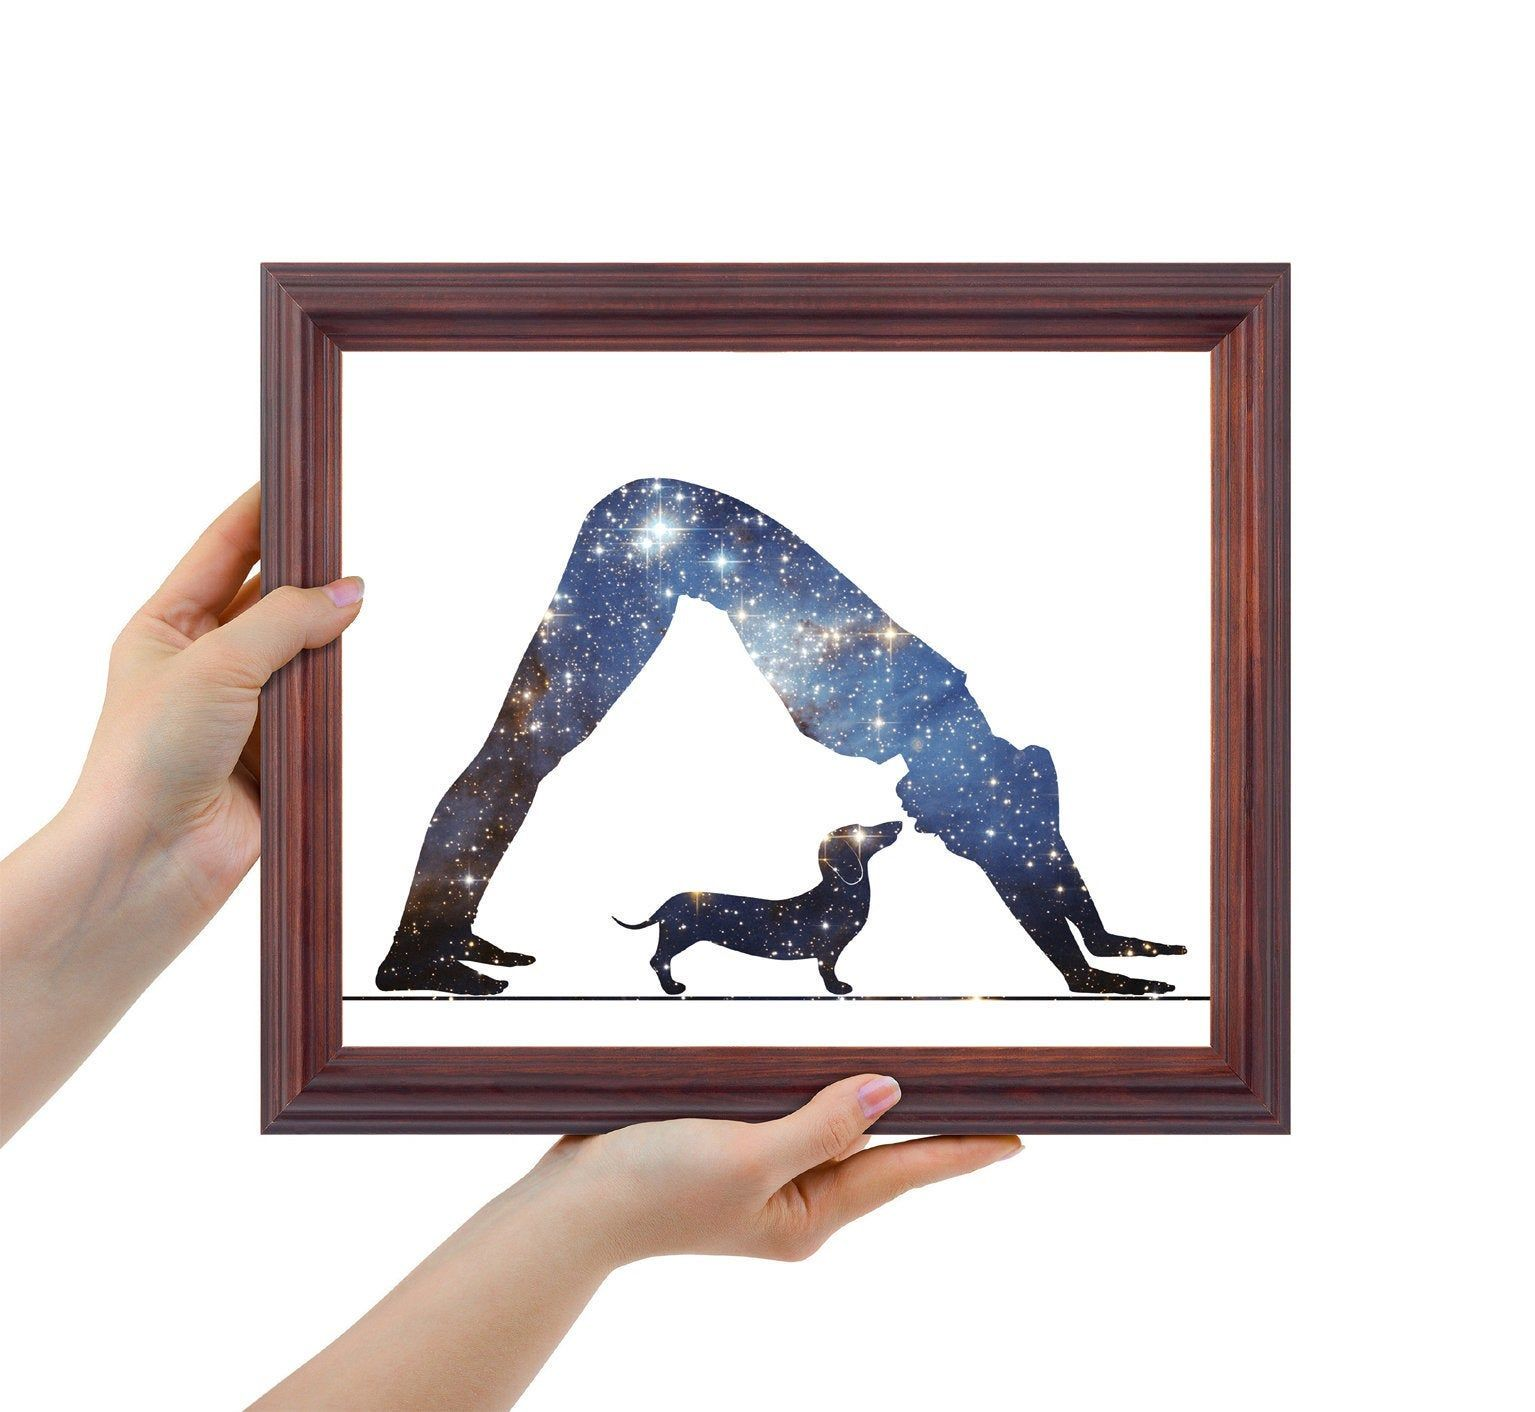 Woman In Yoga Pose Woman With Dachshund Dog Print Galaxy Yoga Gift Meditation Art Woman And Dog Personalized Gift Space Wall Decor Yoga Room Decor Meditation Art Yoga Art Painting